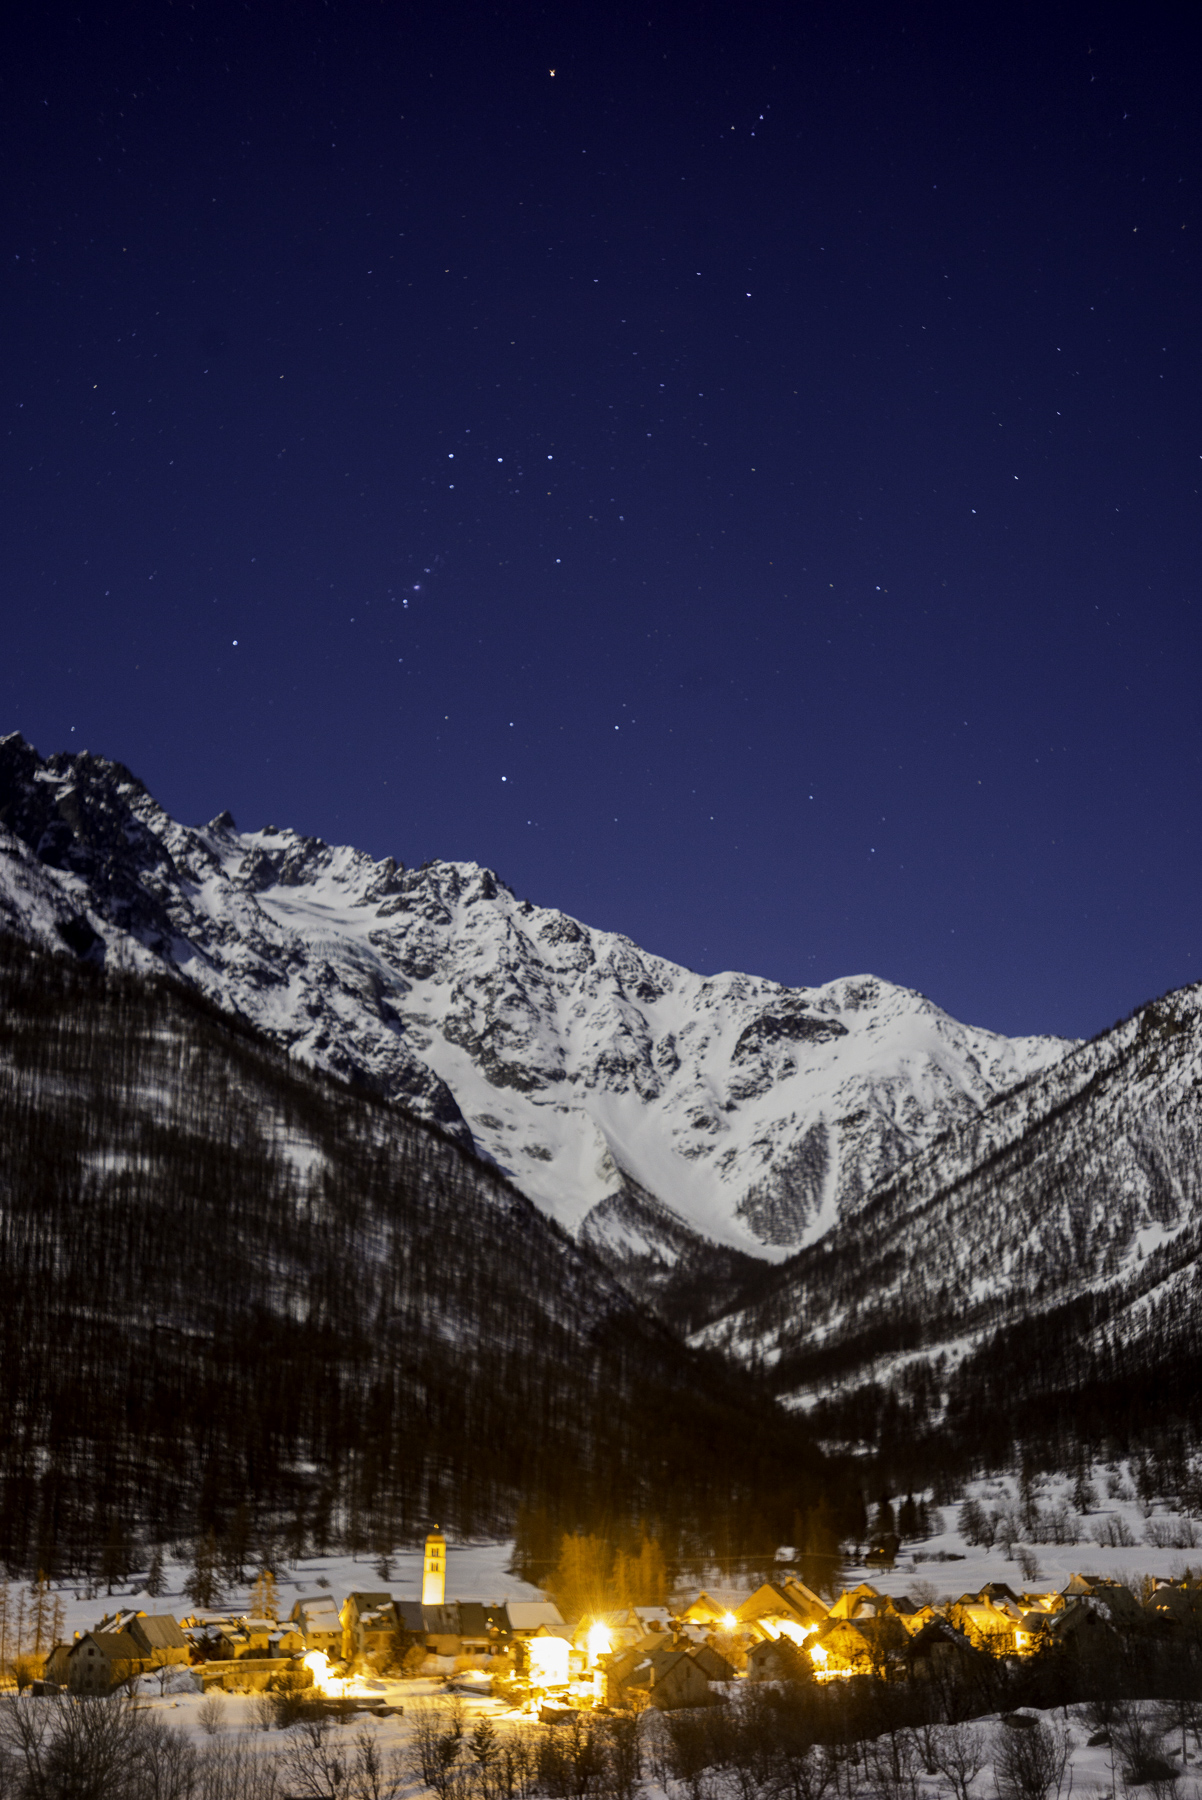 daniel-fine-photo-hyperfocale-633.jpg  snowmoon